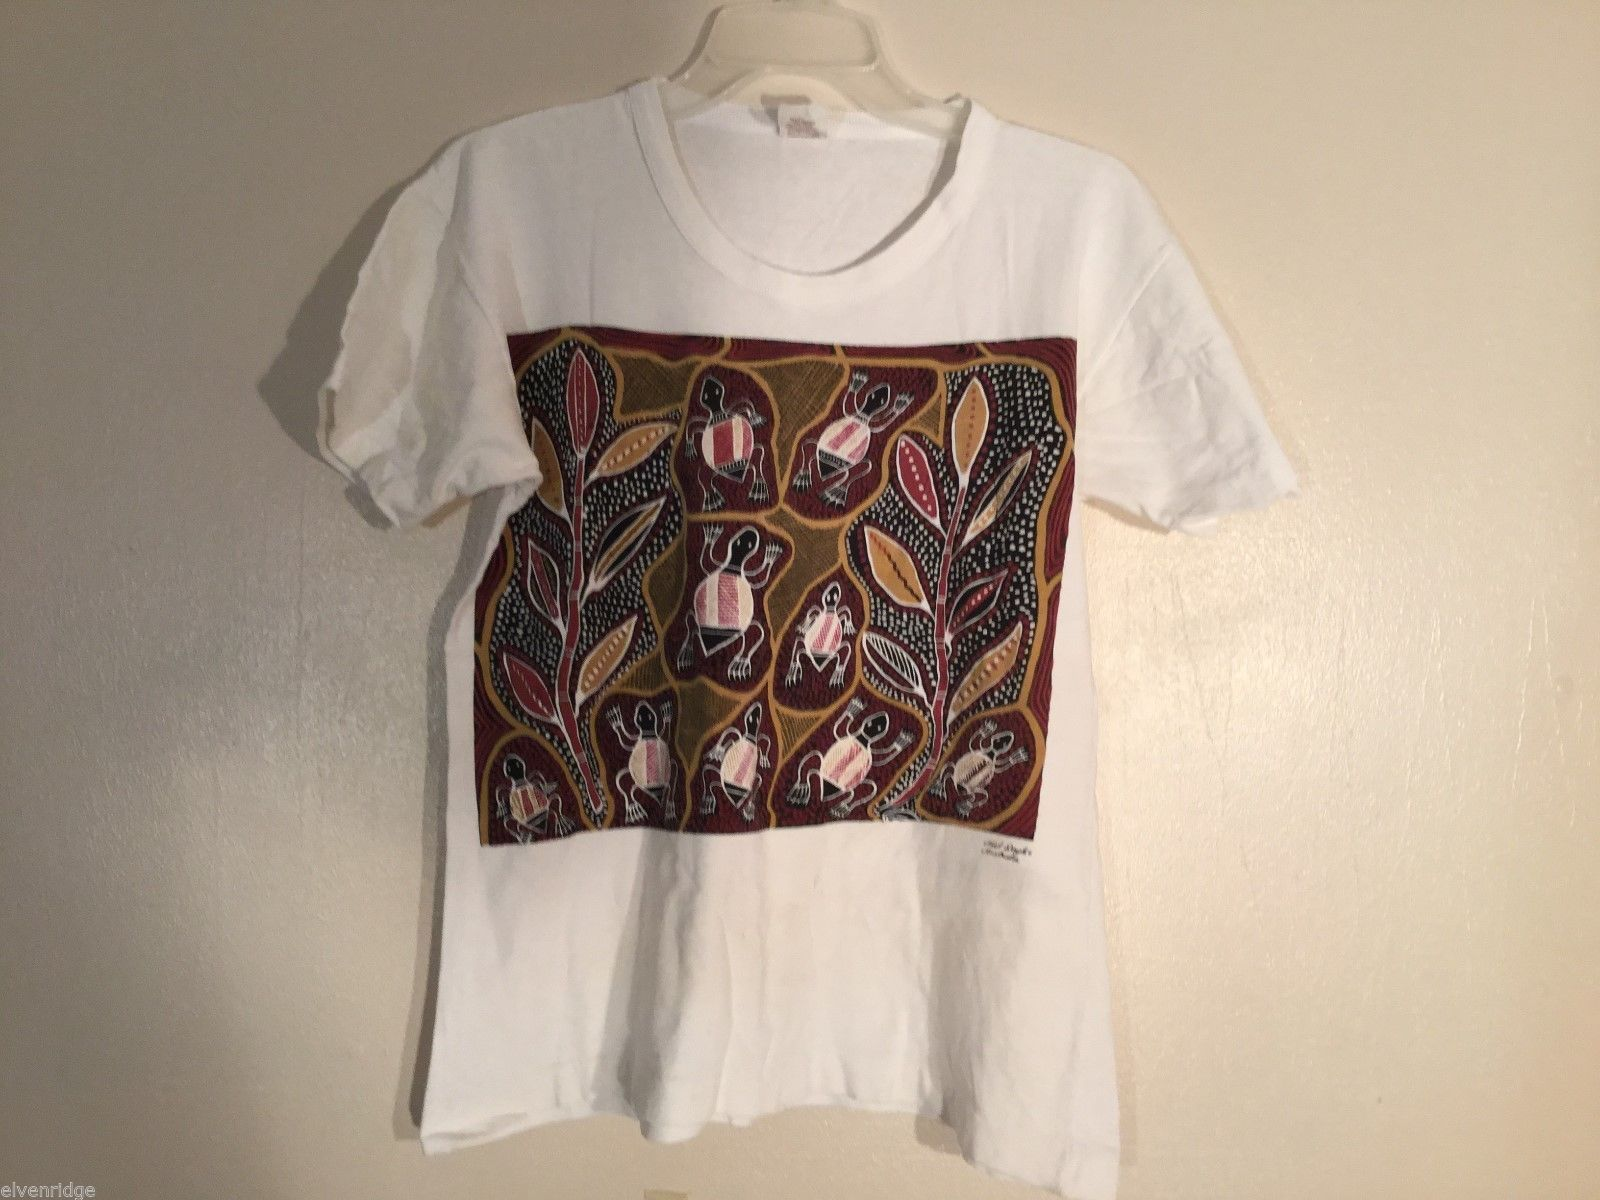 Unisex Noel Doyle Kalka Print T-Shirt Made in Australia, size Medium